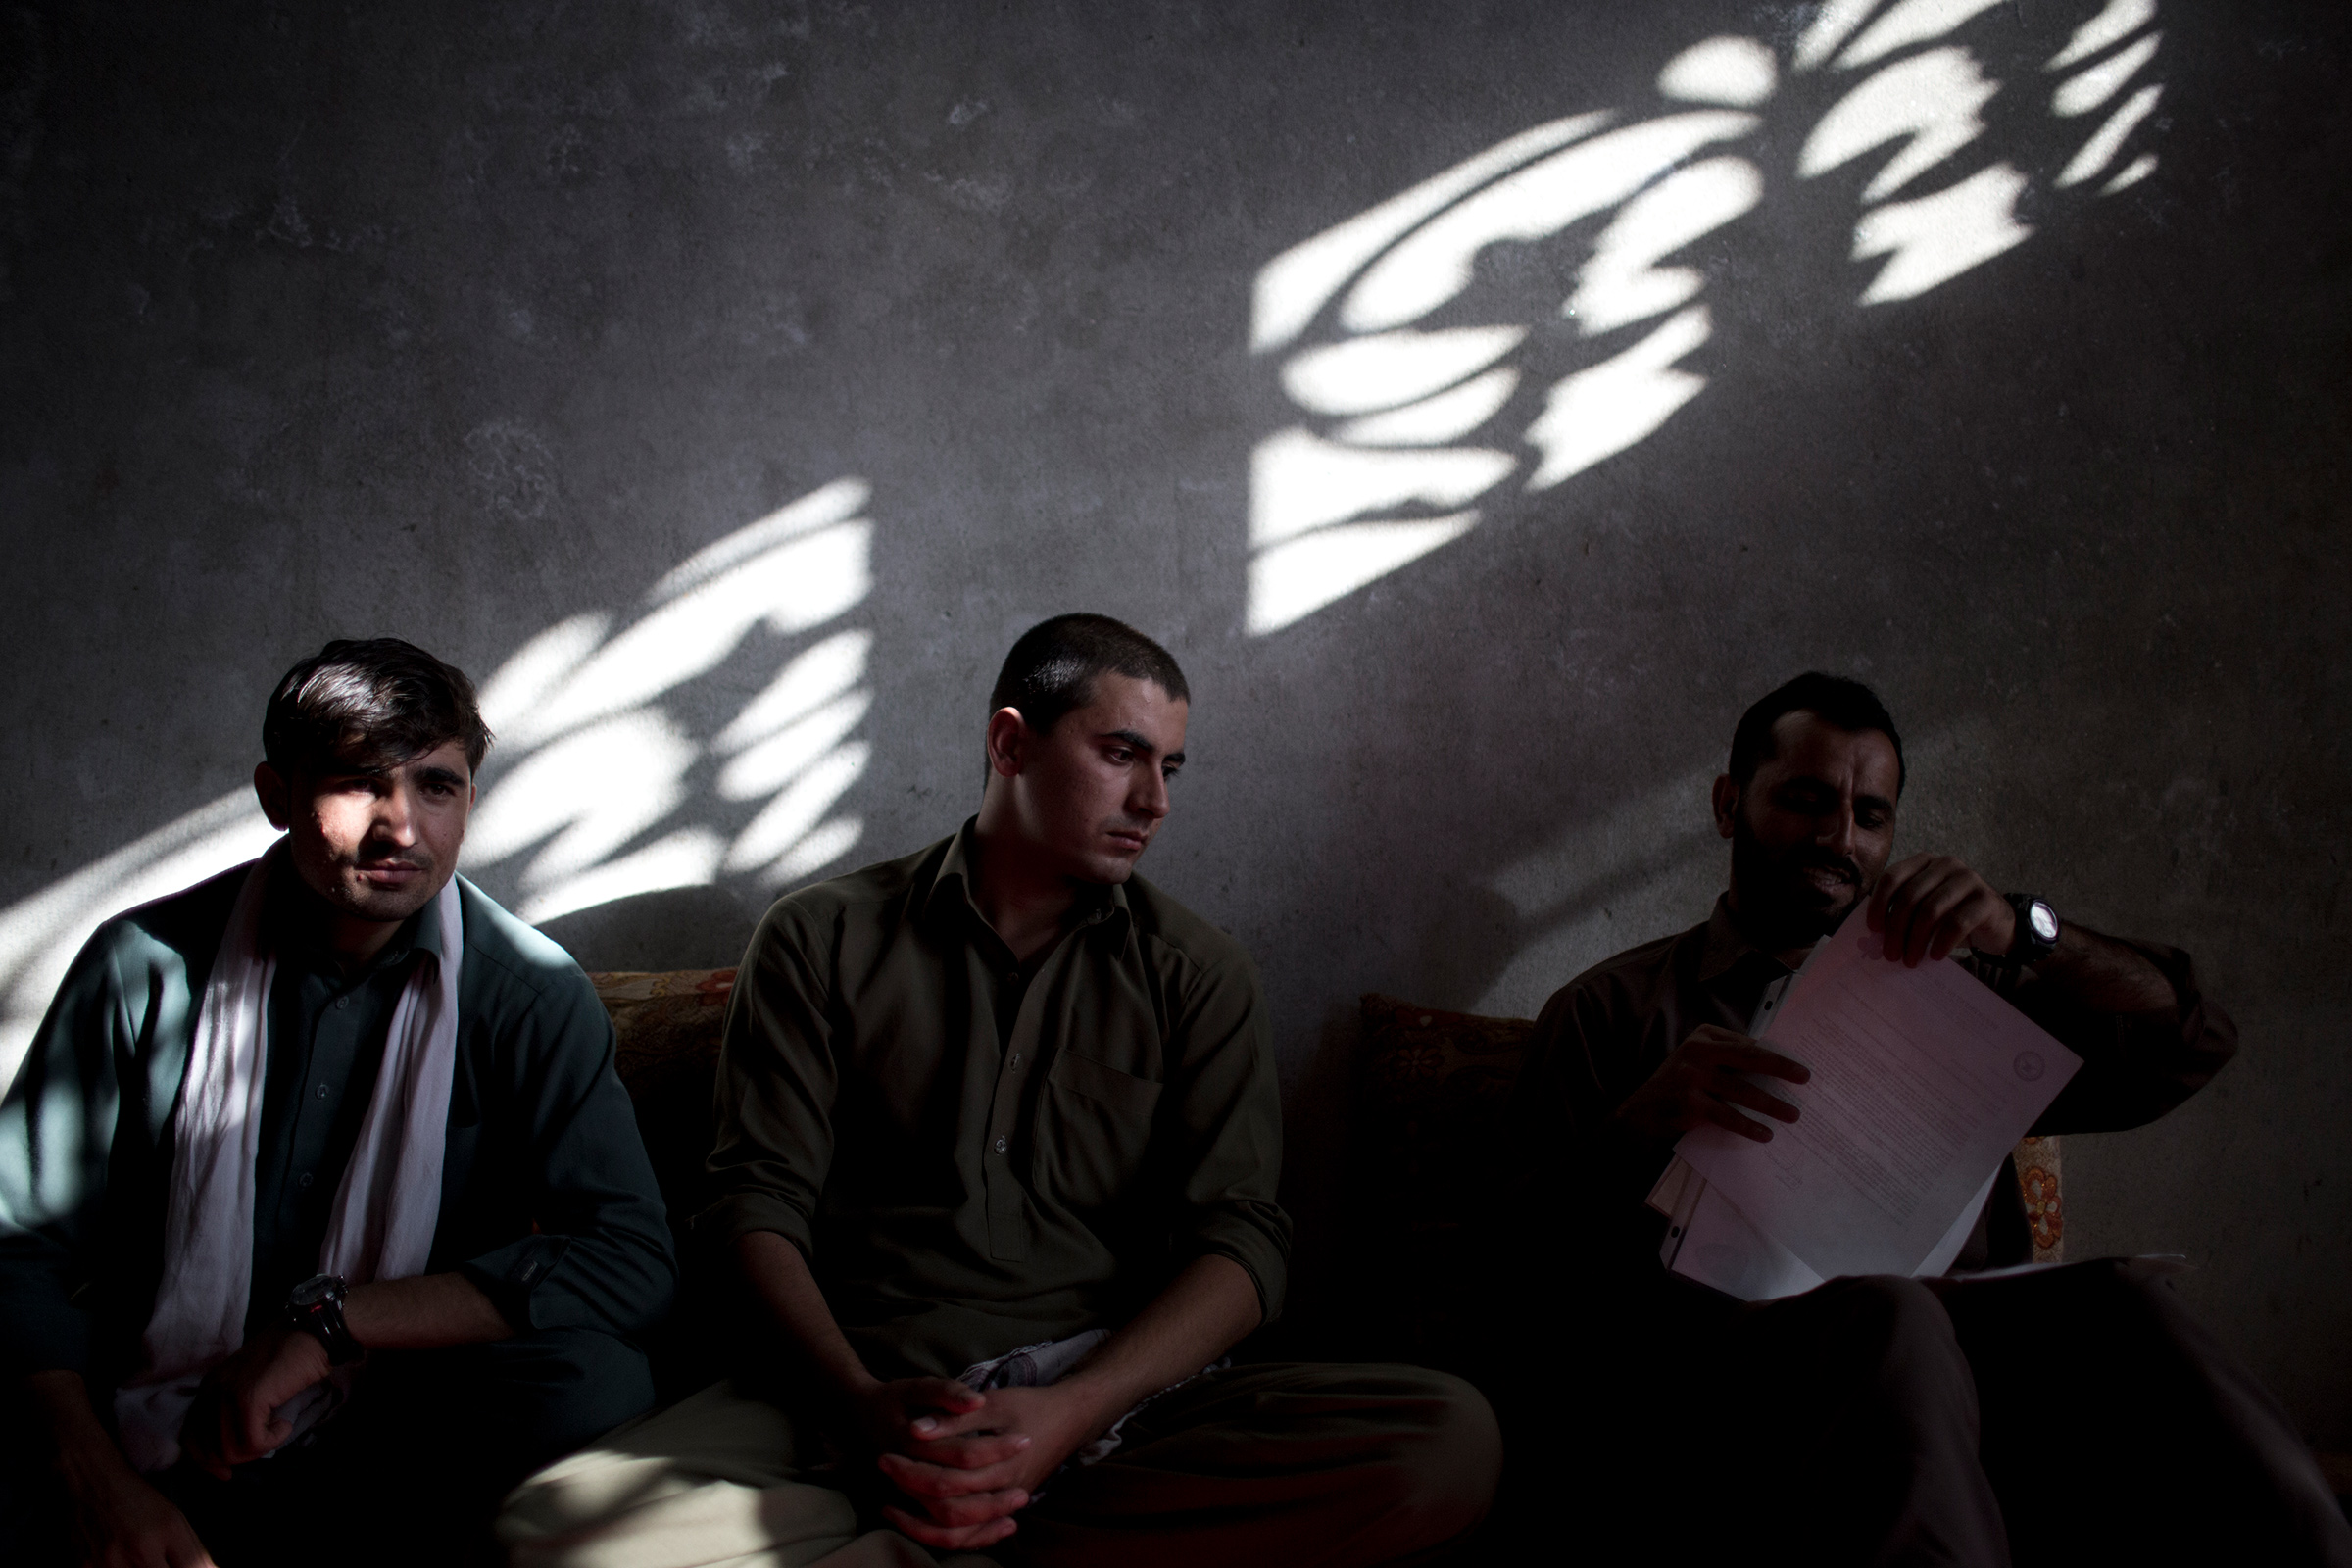 Interpreters, from left, Afiqullah, Irshadullah and Said Hussein, all working for the U.S. army, meet in Jalalabad, Afghanistan, on Oct. 20, 2012. They applied for a U.S. visa through the Afghan SIV program.